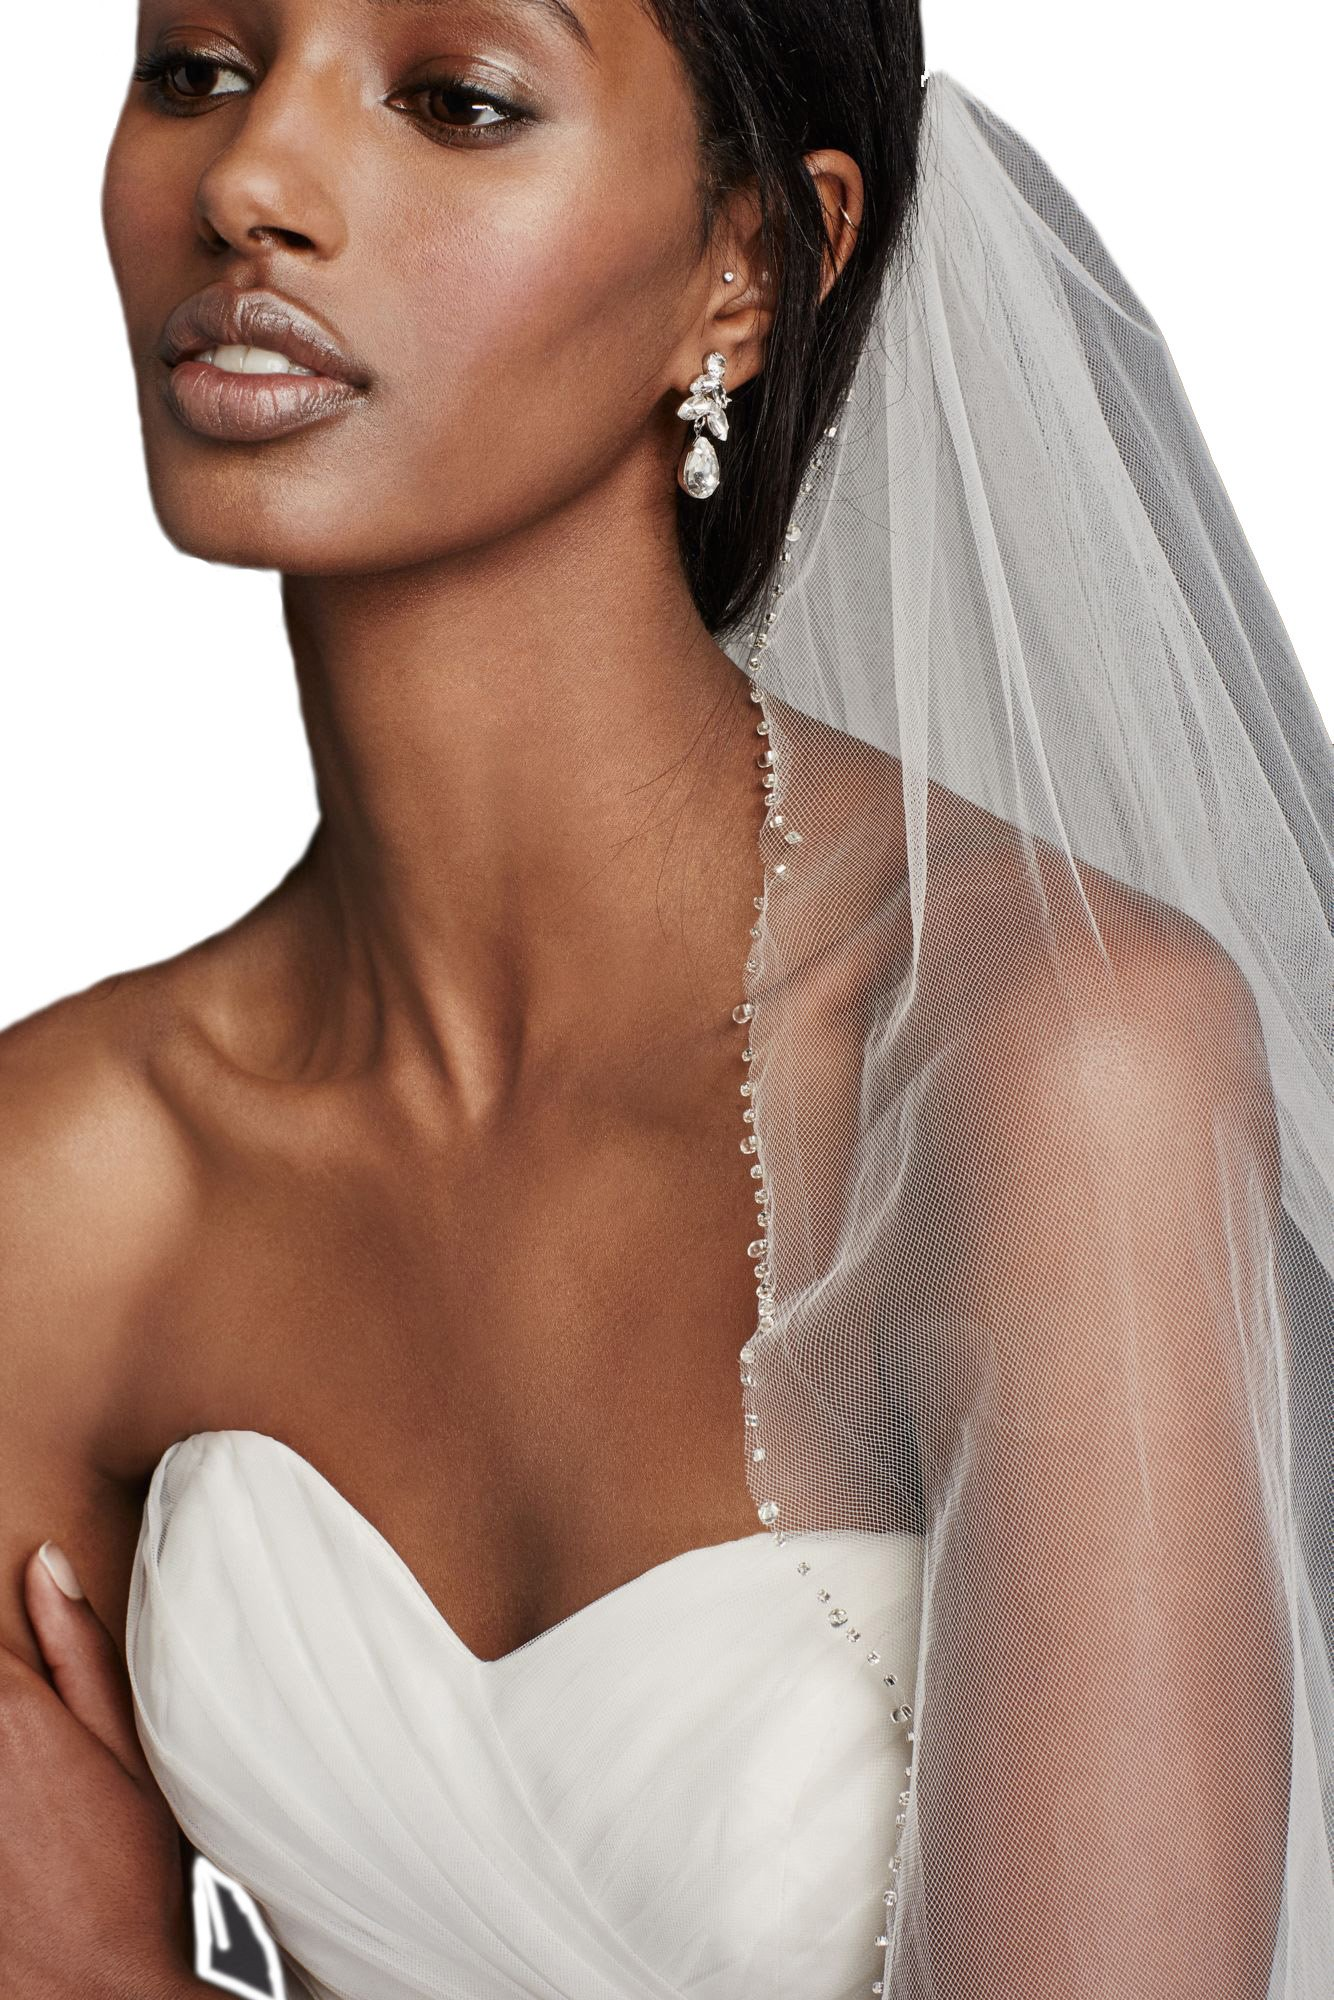 Passat Champagne Single-Tier 3M Cathedral Scalloped Wedding Veil with Beaded Scrollwork DB7 by Passat